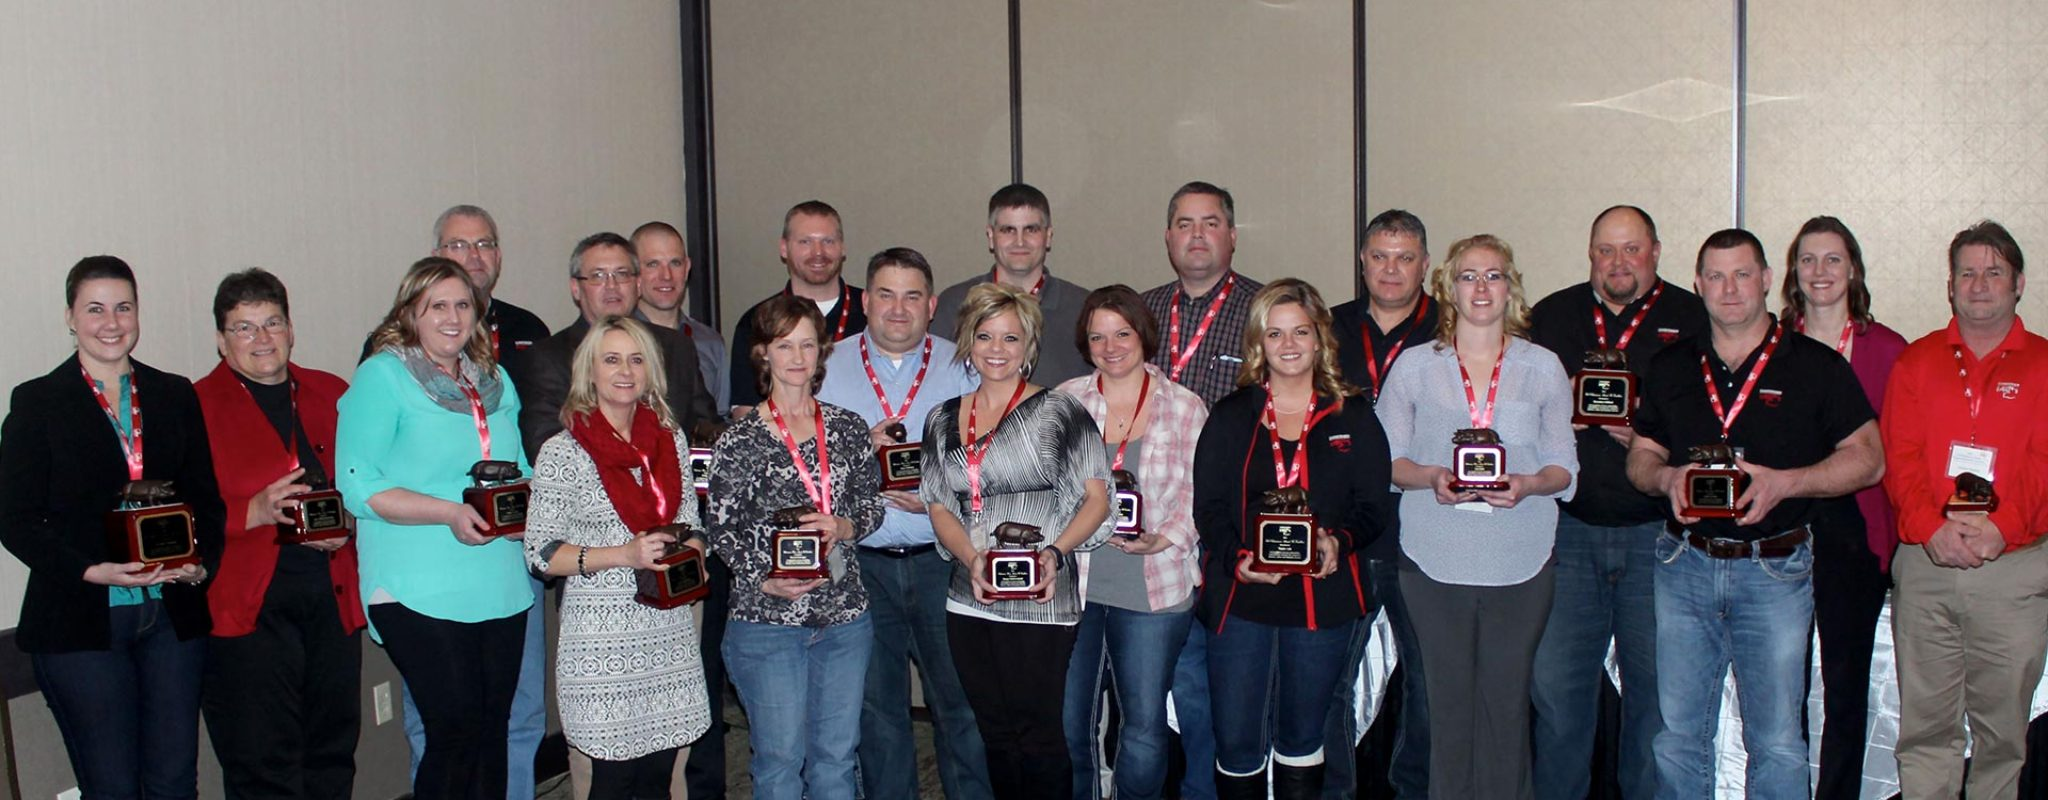 Christensen Farms Announces 2015 Organizational Award Winners